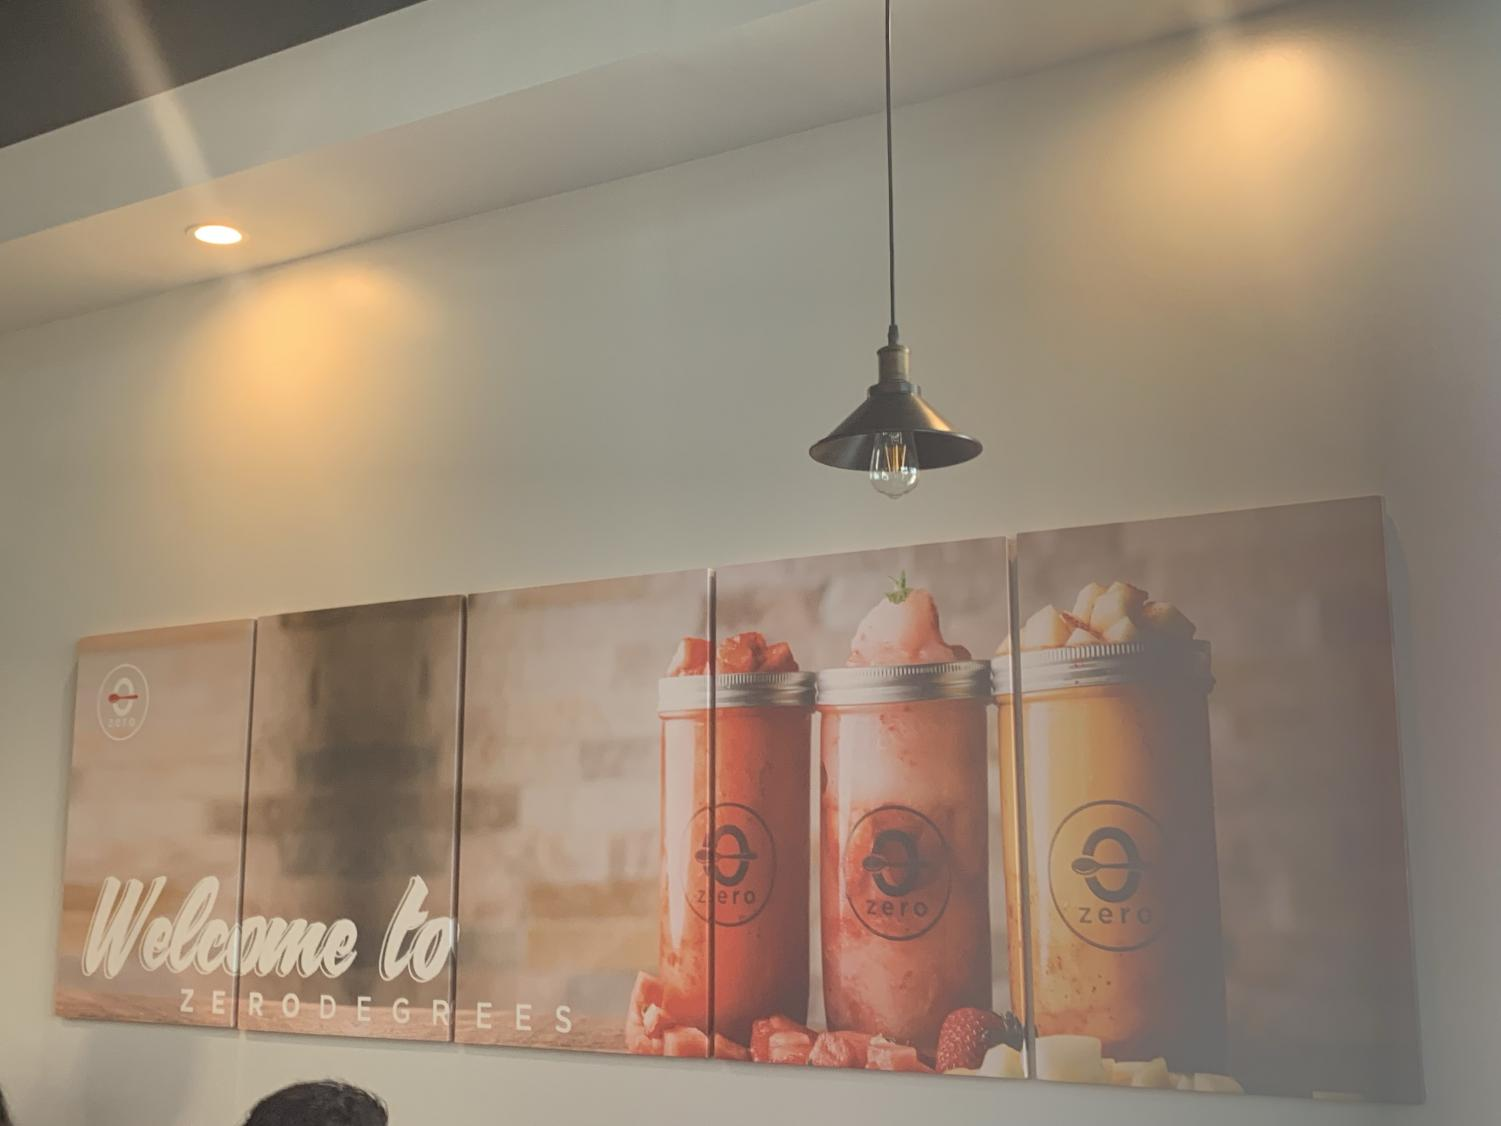 Zero+Degrees+Serves+Slow+Fast+Food+Fusion+Experience